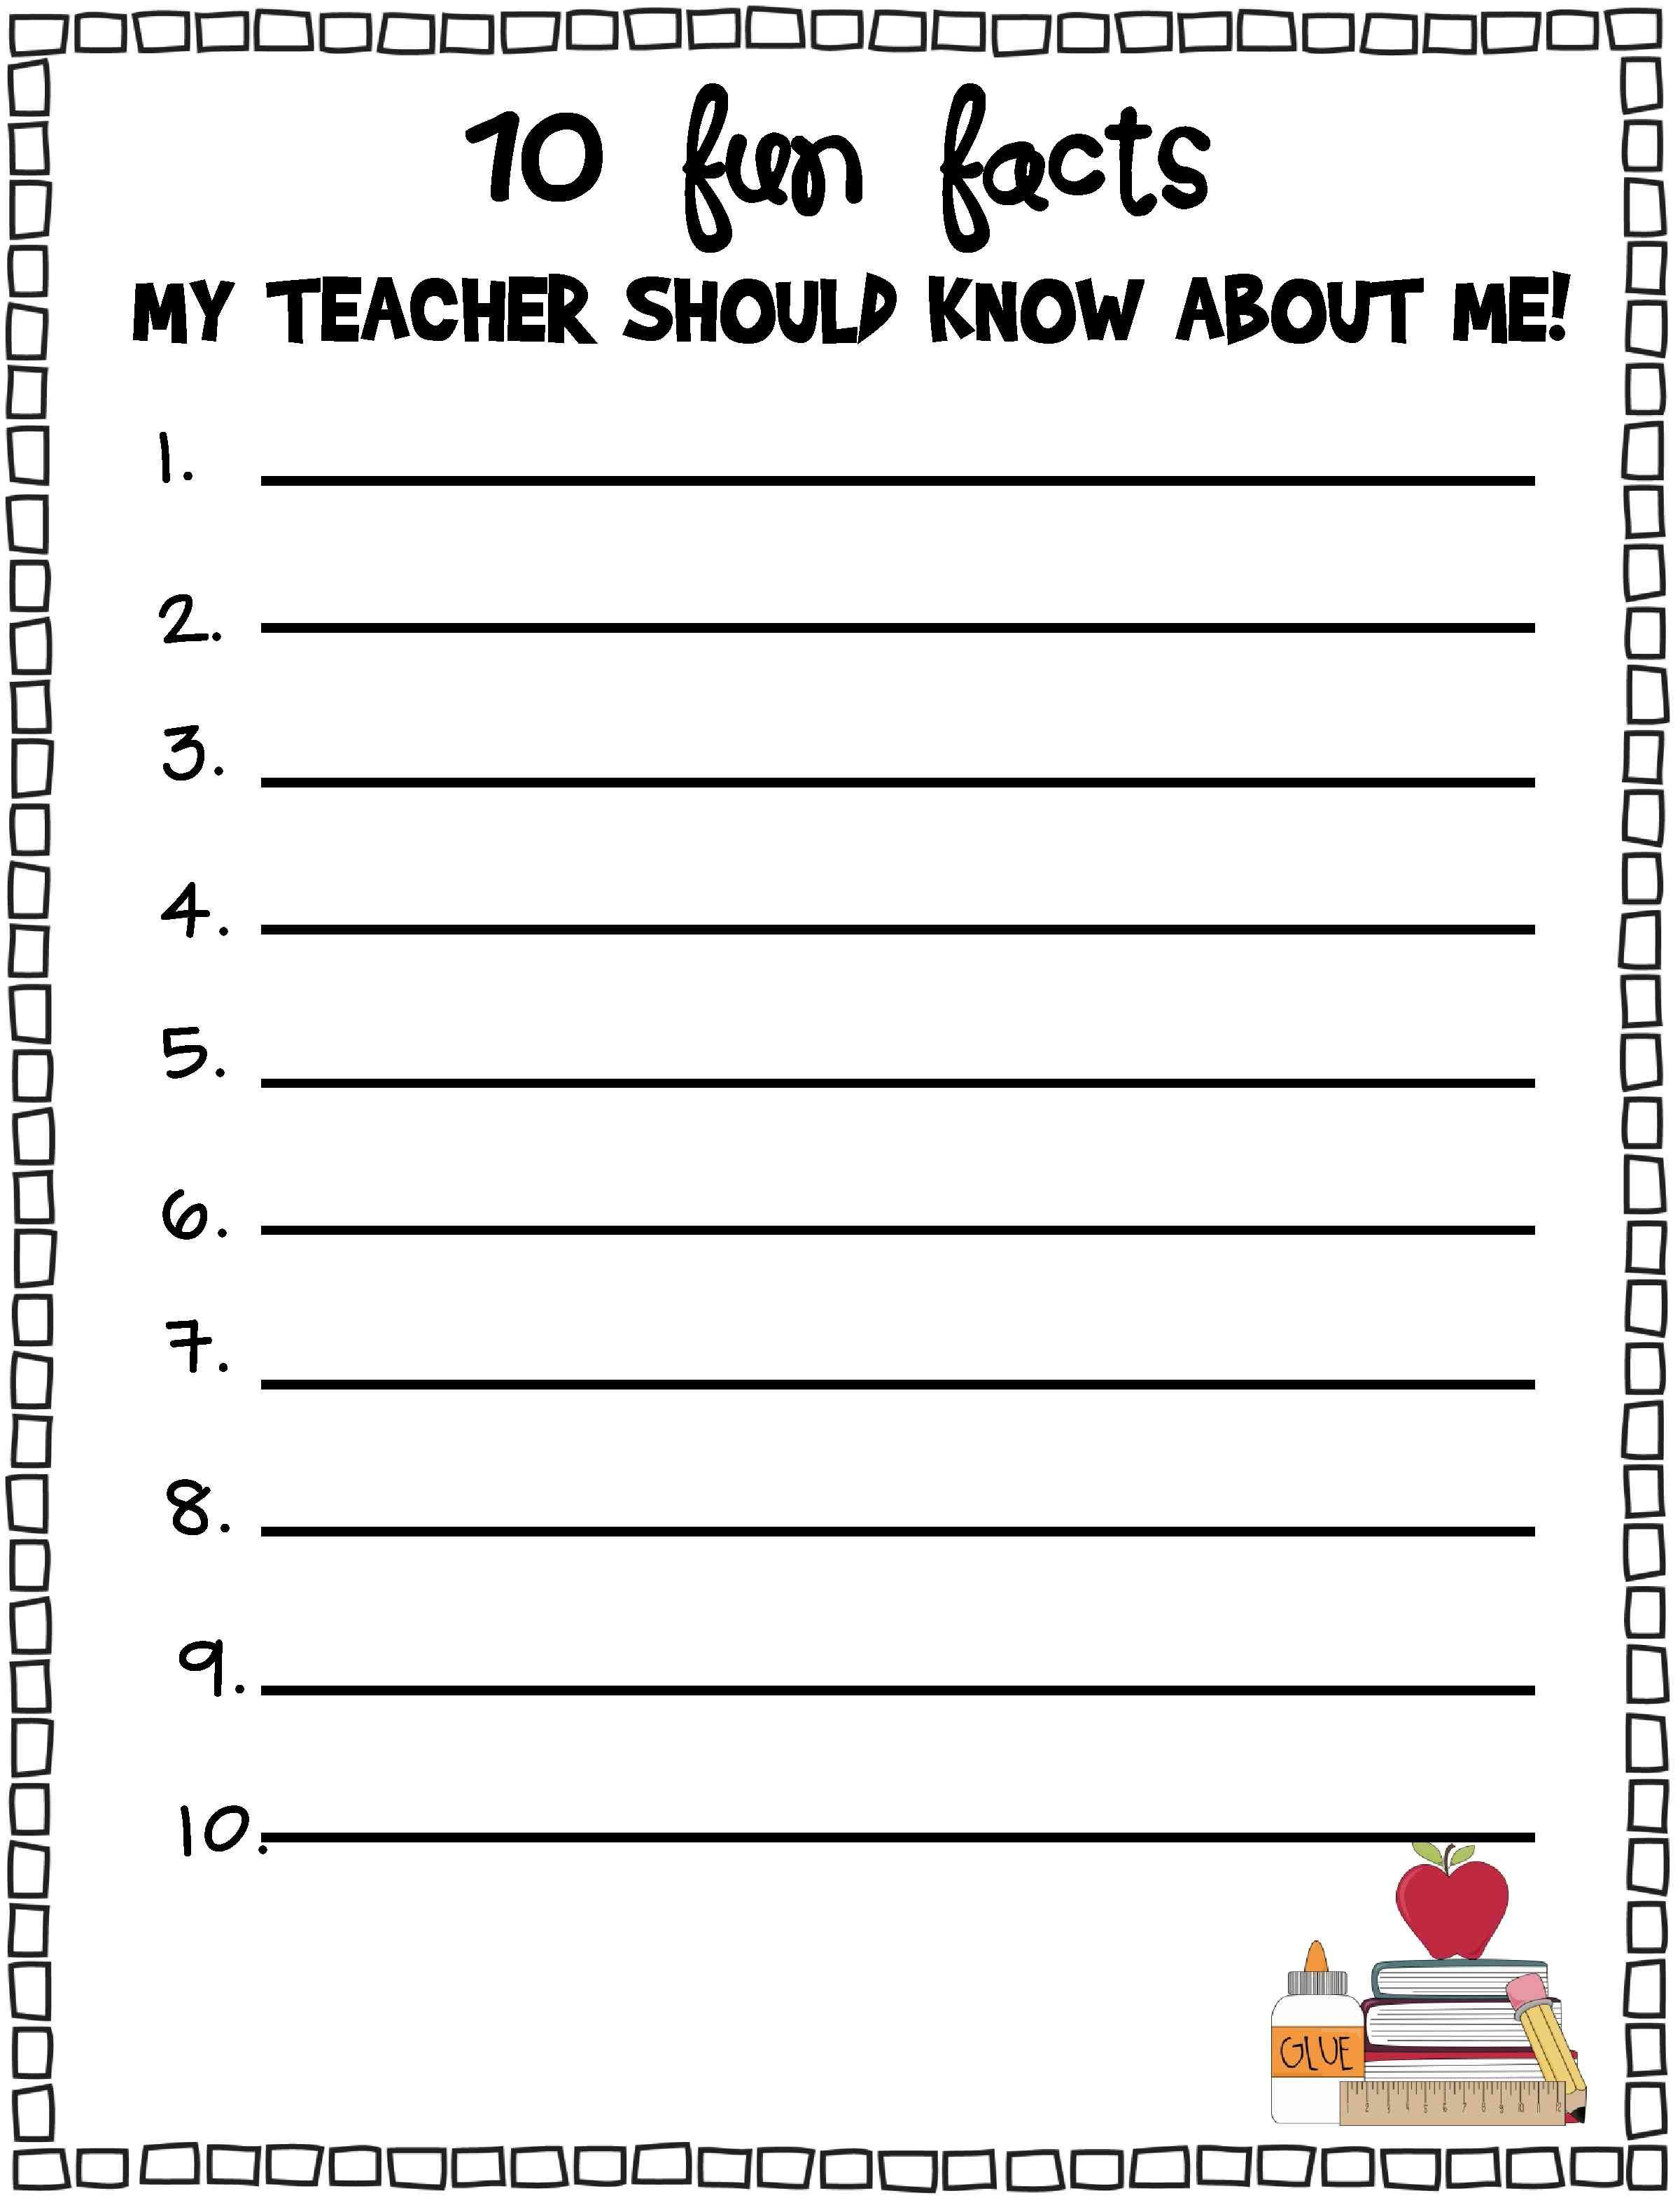 10 Fun Facts My Teacher Should Know About Me Freebie